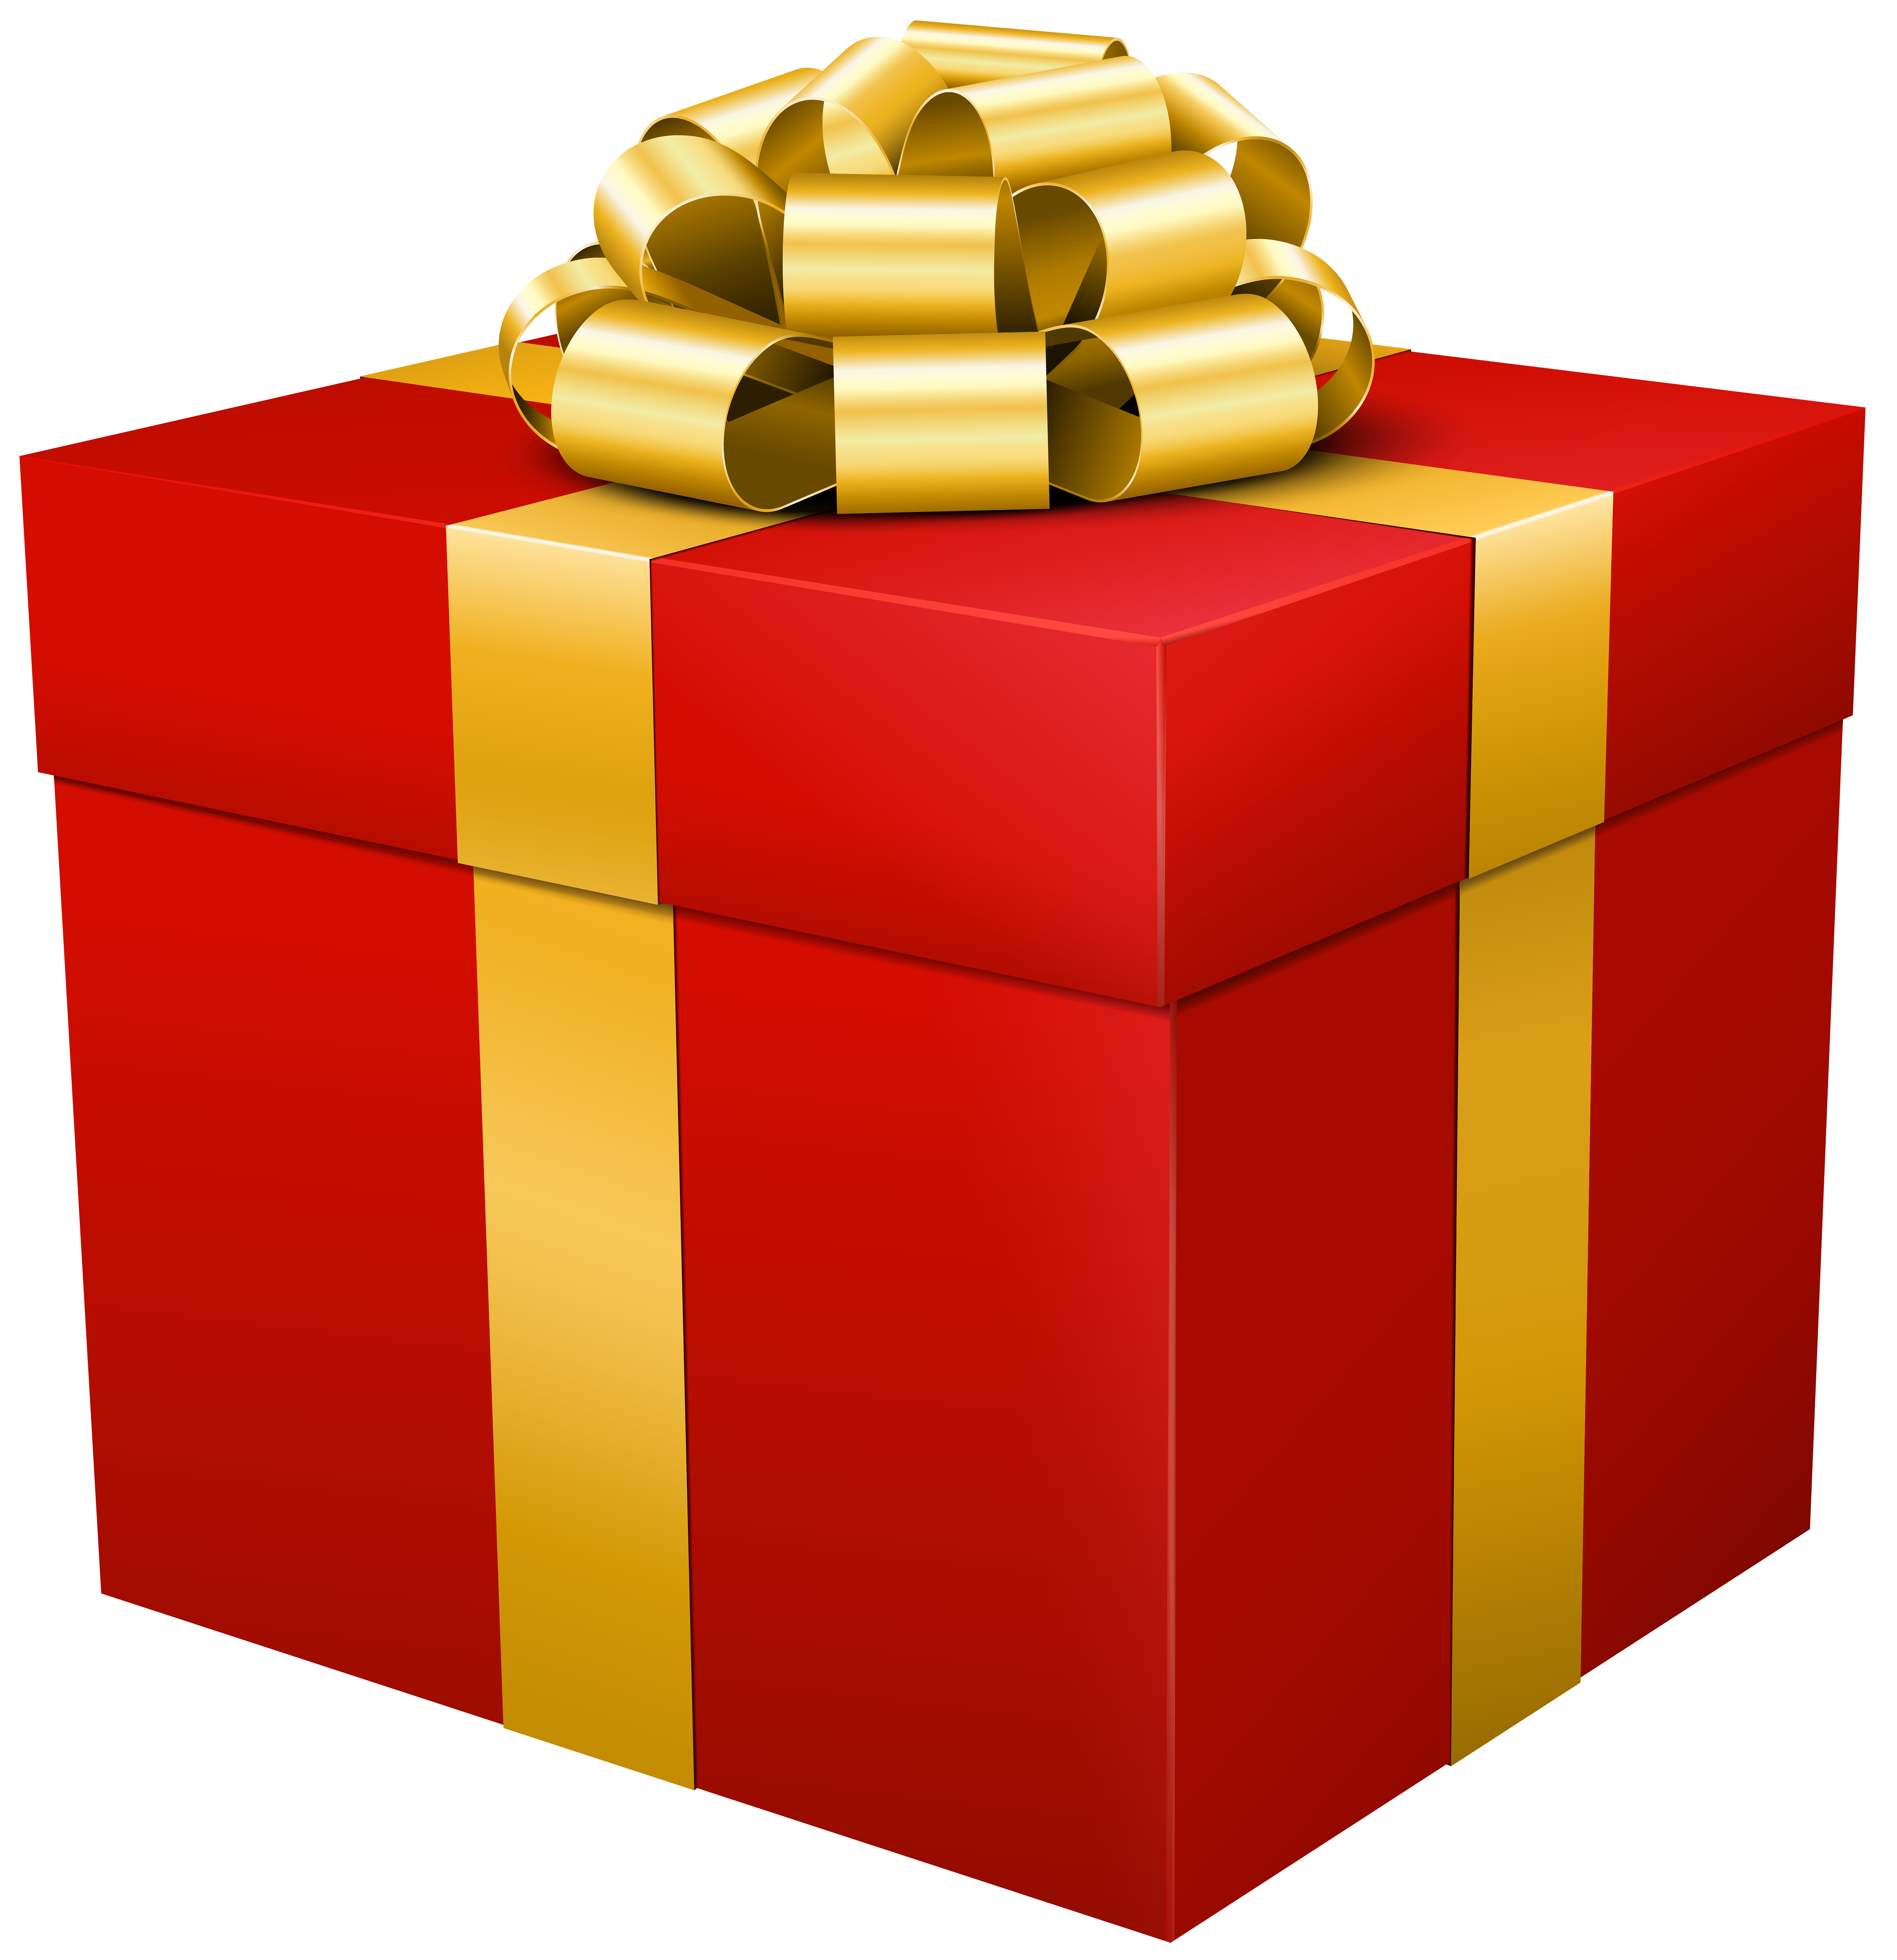 Gift clipart prsent. Red box transparent png